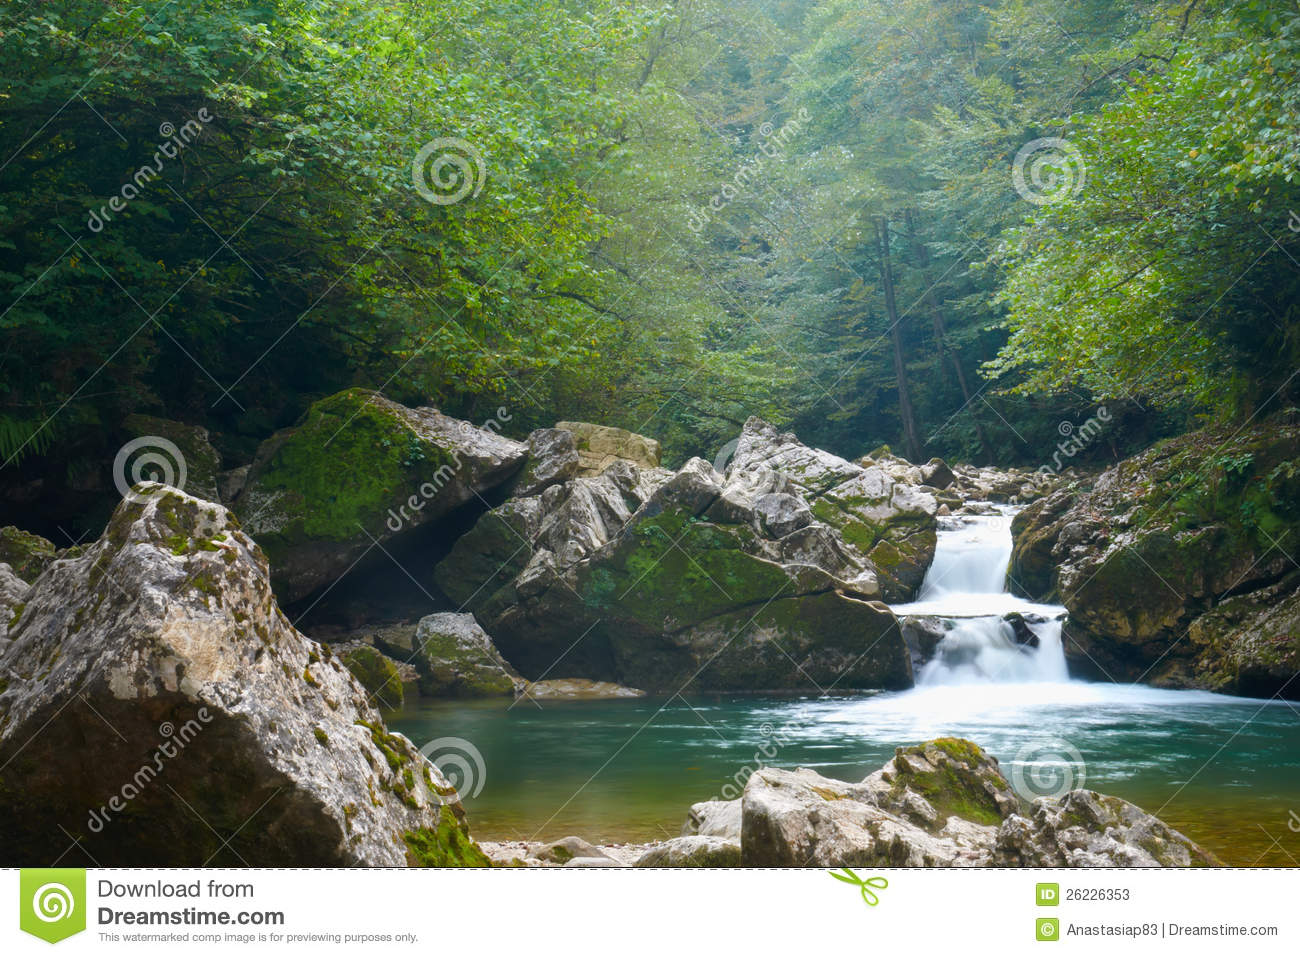 Leaf Wallpaper Wet Fall Small Mountain River Waterfall Stock Photos Image 26226353